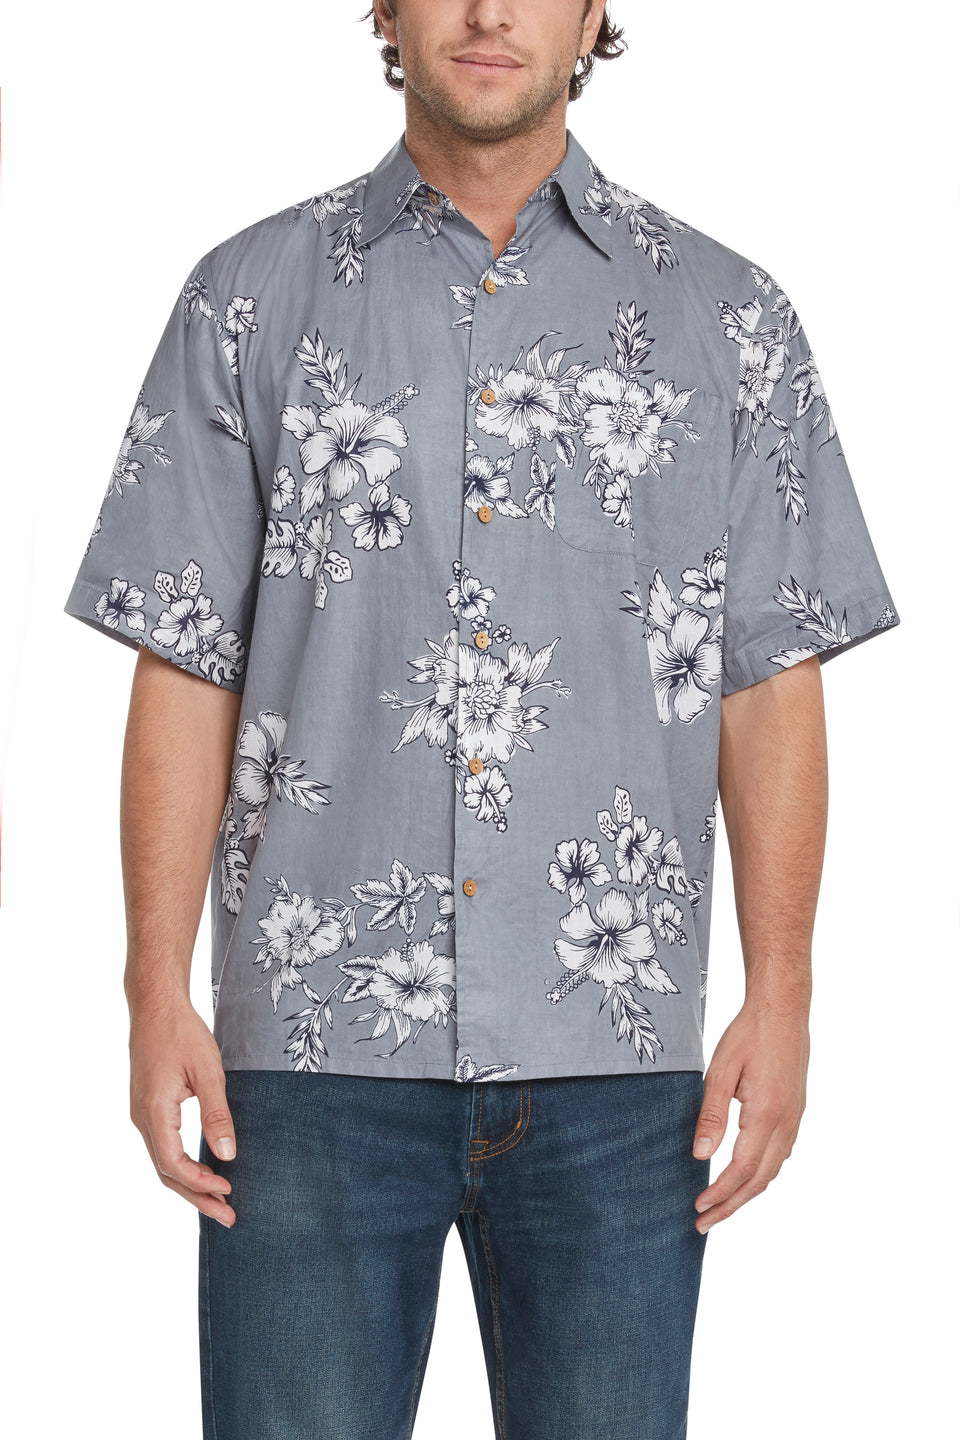 Gray and Navy Hibiscus Sympatiko Shirt